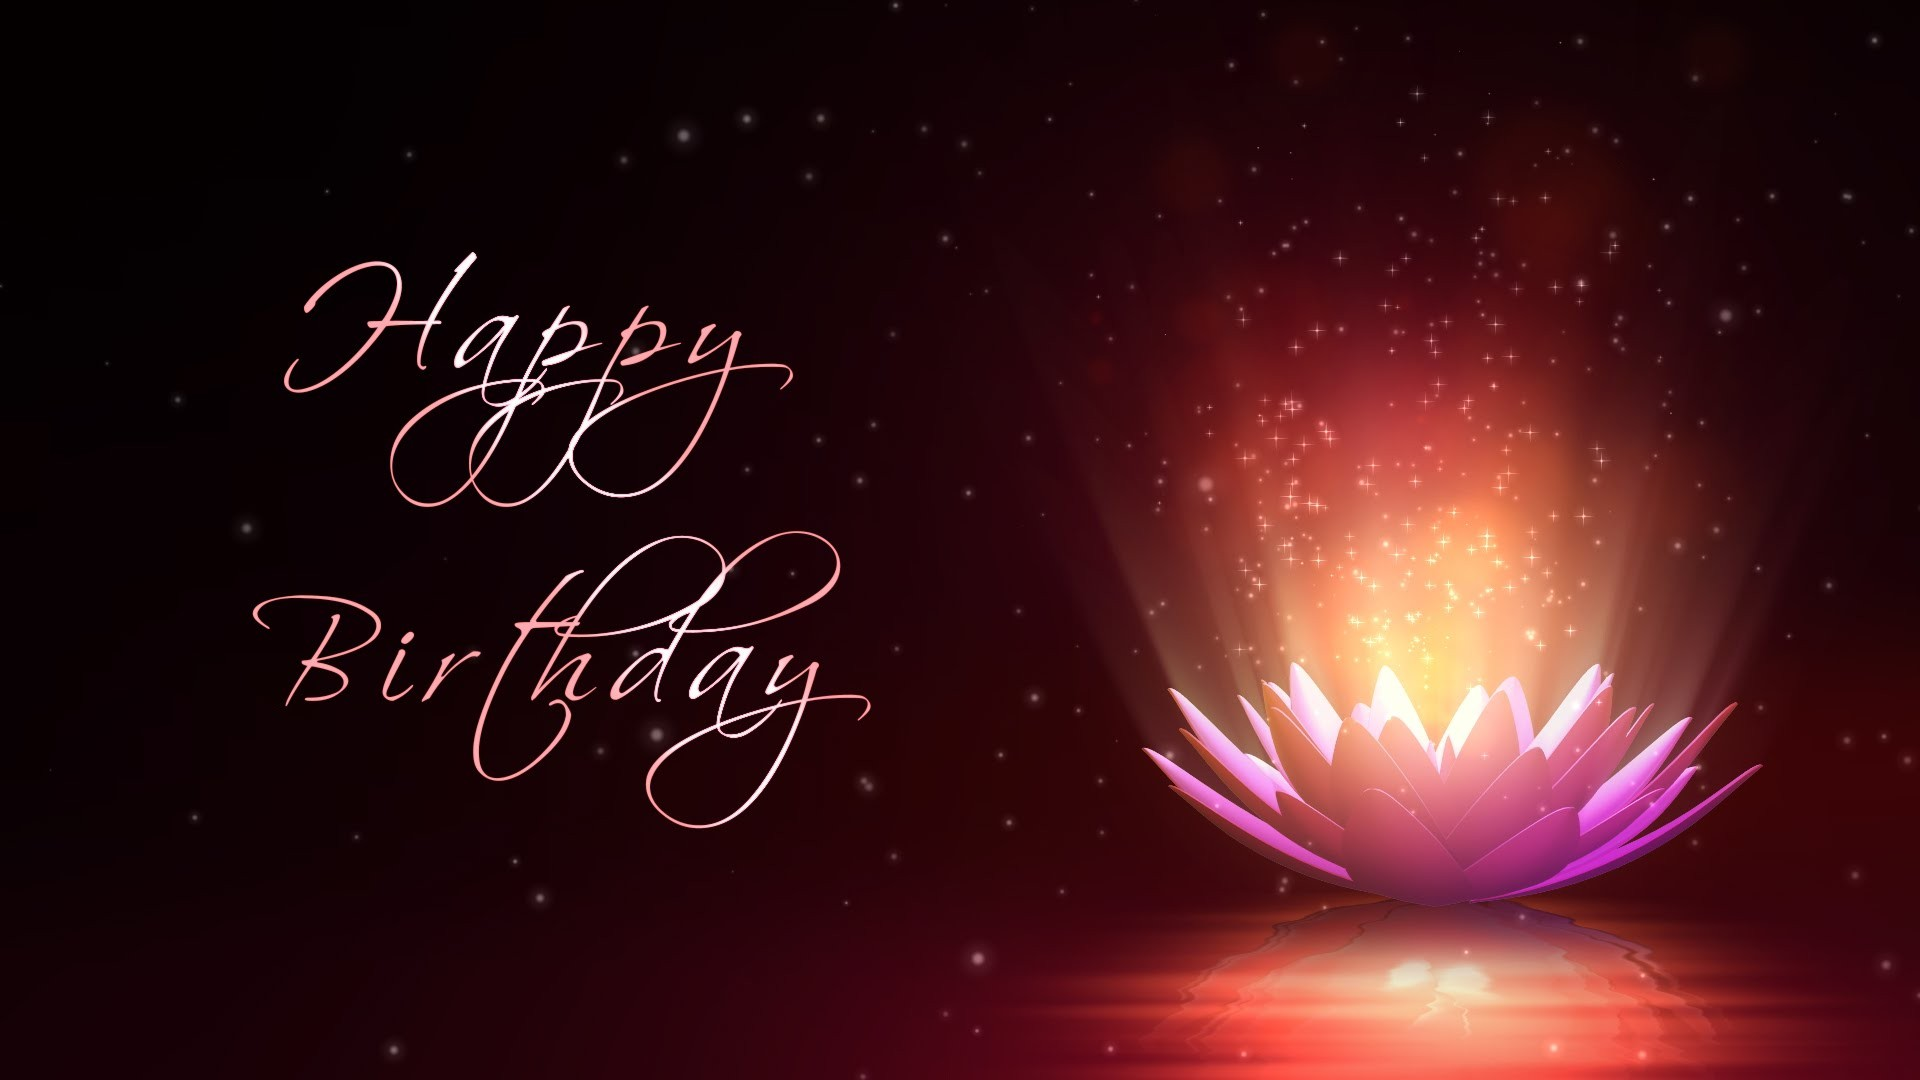 Animated Wallpapers Free Download For Xp Happy Birthday Background 183 ① Download Free Stunning